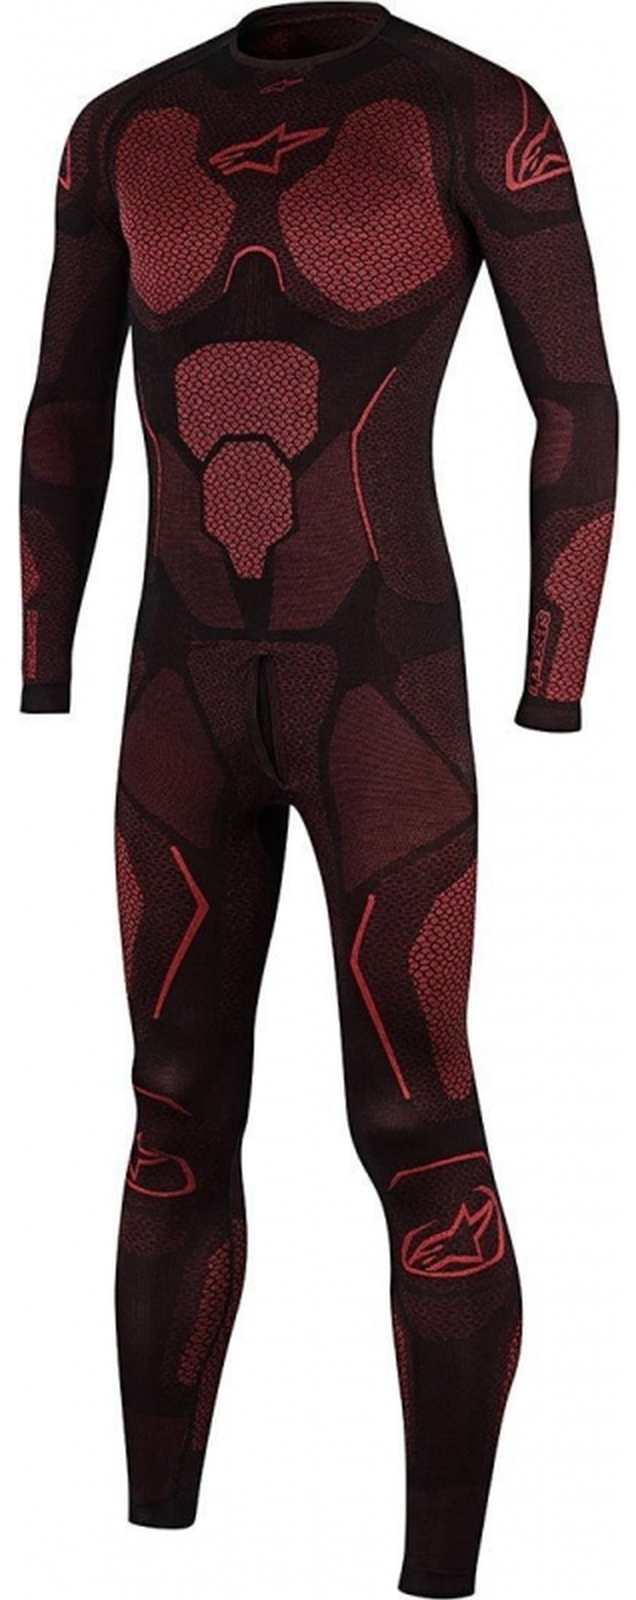 RIDE TECH 1 PC UNDERSUIT SUMMER